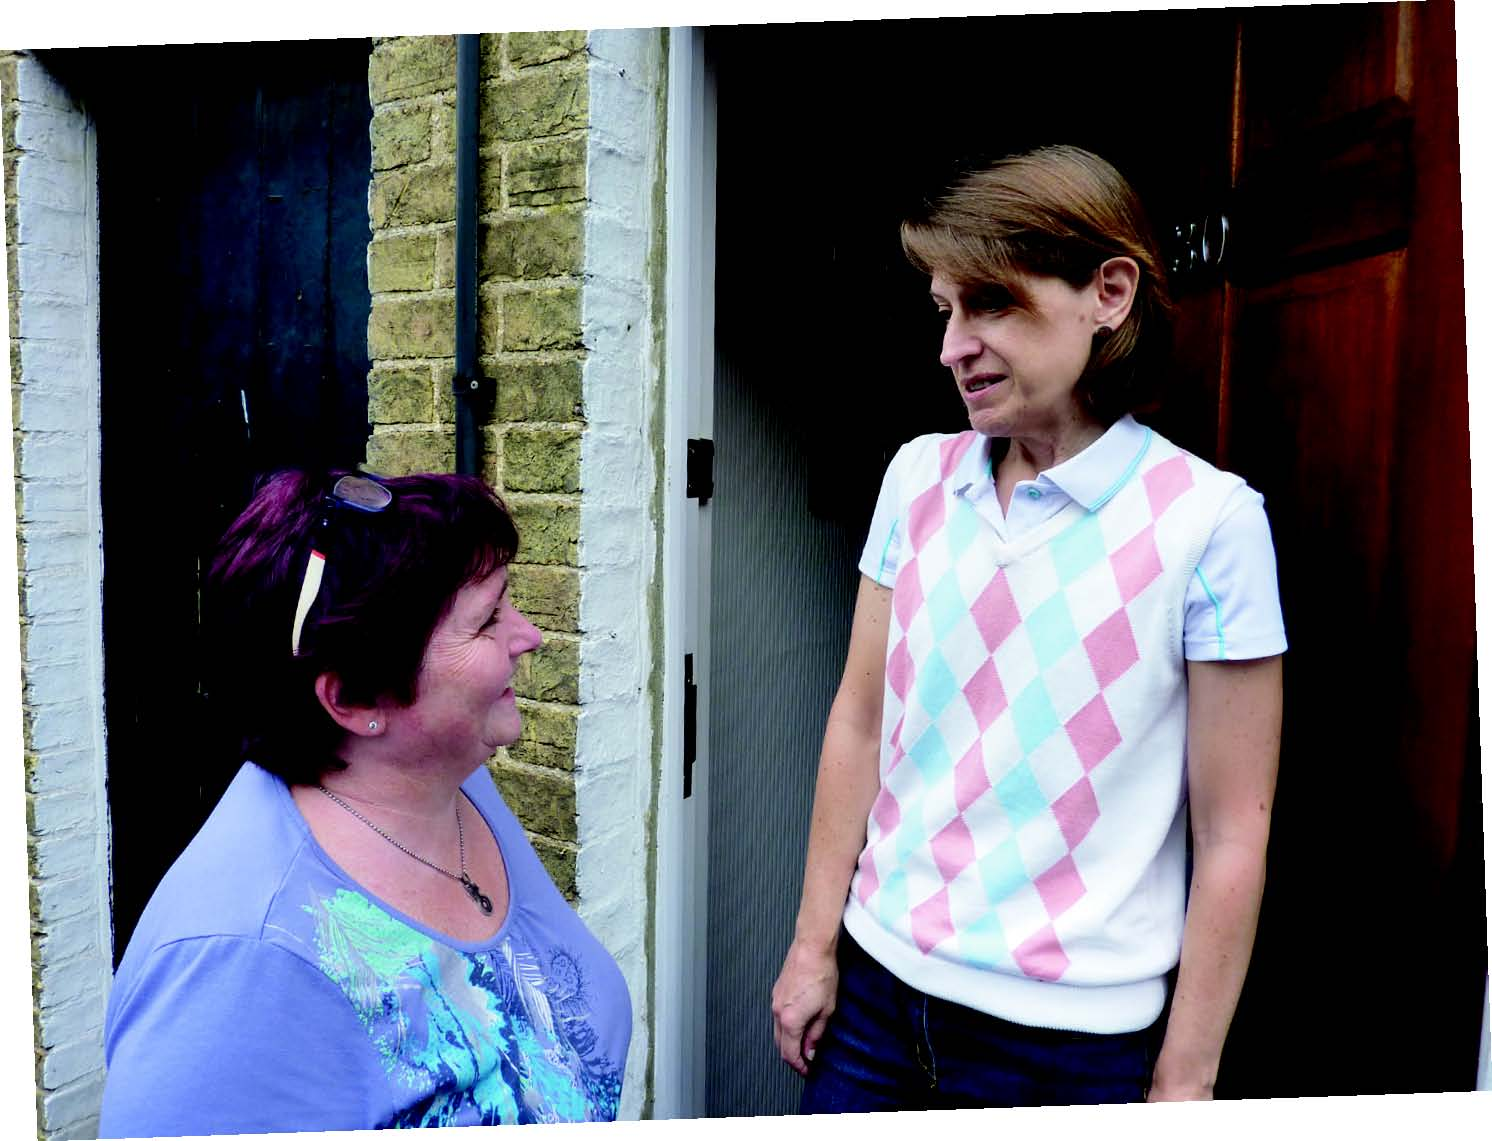 Christine Whelan and Paola Trimarco discussing parking on St Johns Road